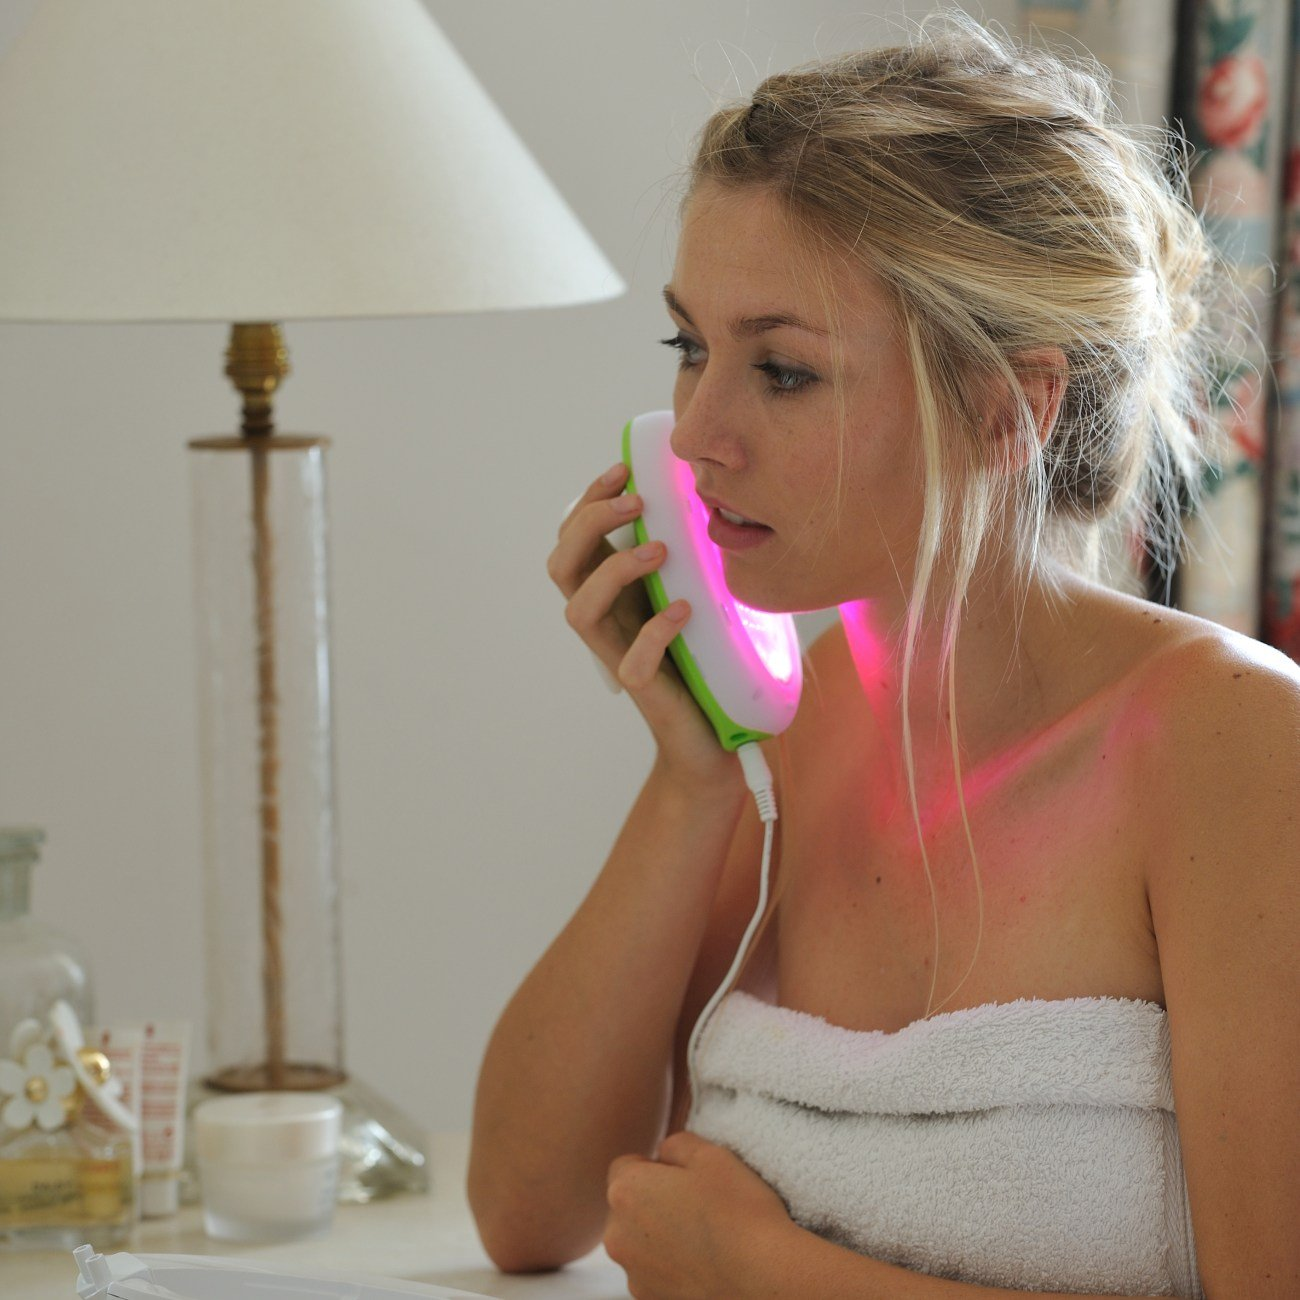 Lumie Clear – Acne Treatment at Home with Red and Blue Light Therapy